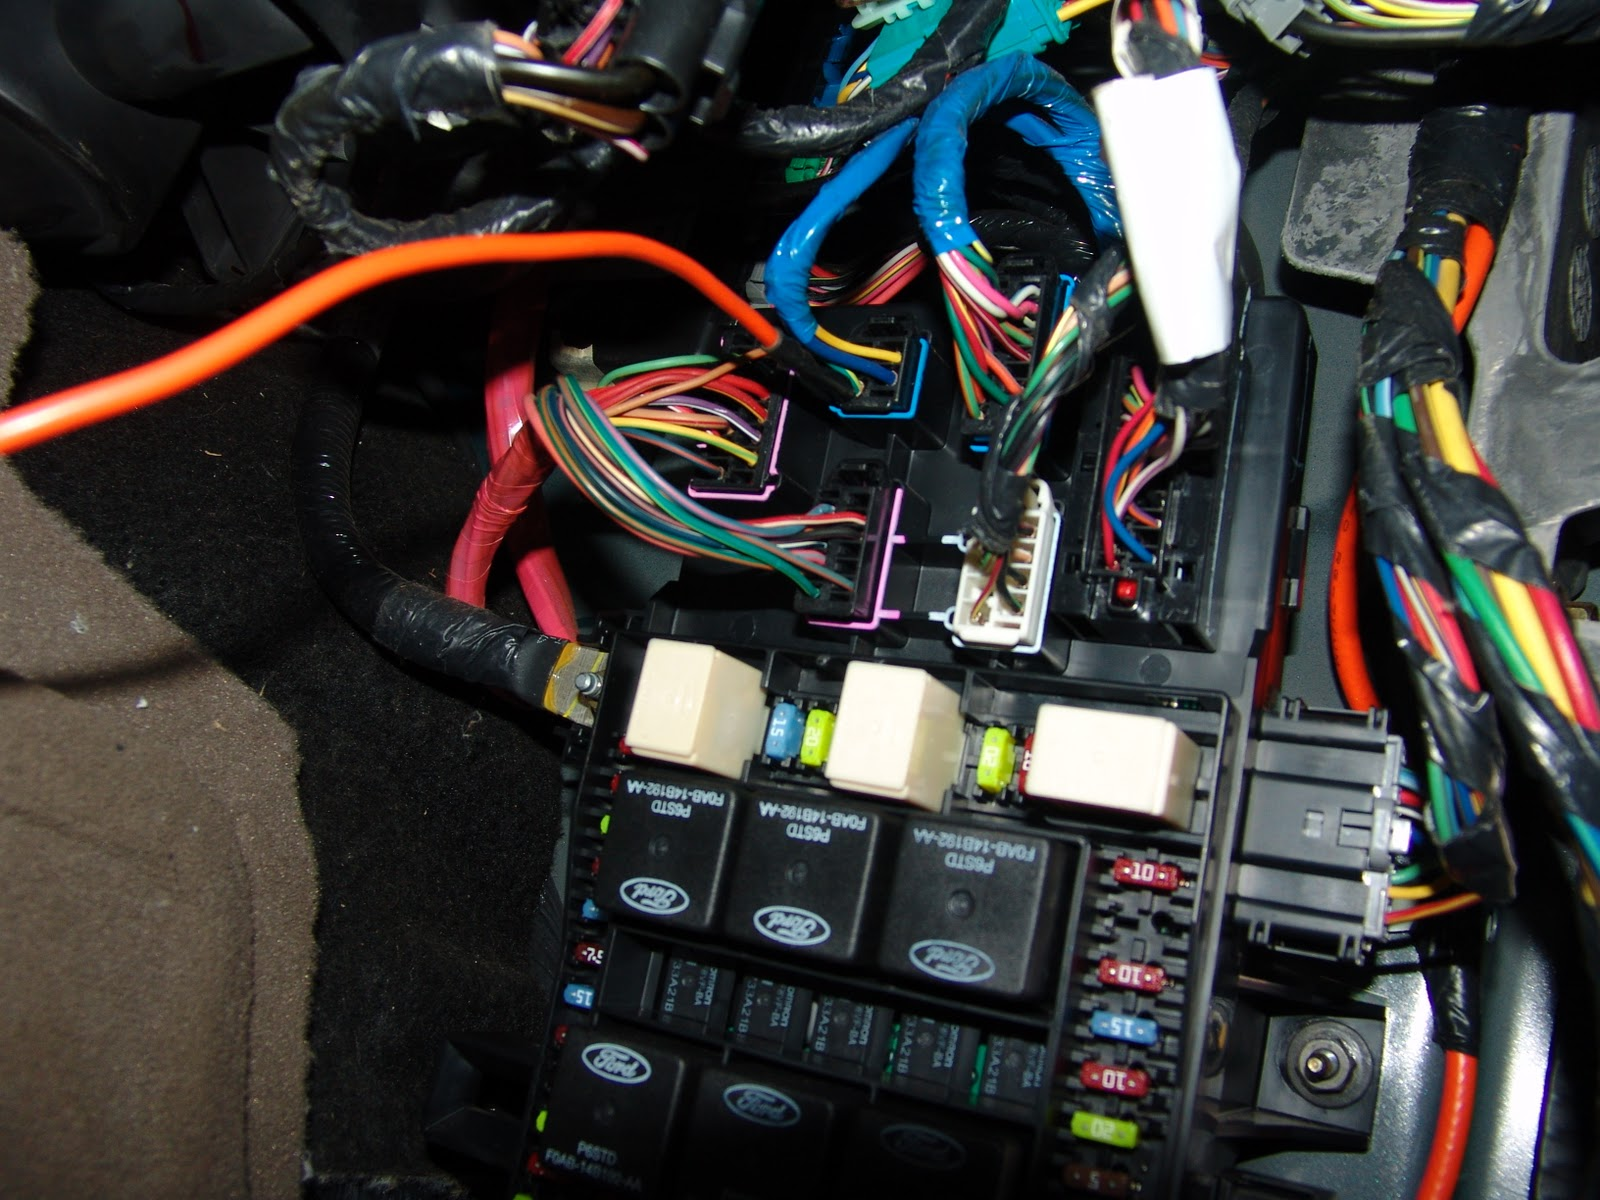 Ford 4000 Ignition Switch Wiring Diagram 3 Pole Contactor 2003 5.4 Expadtion No Fuel Pressure - Truck Enthusiasts Forums